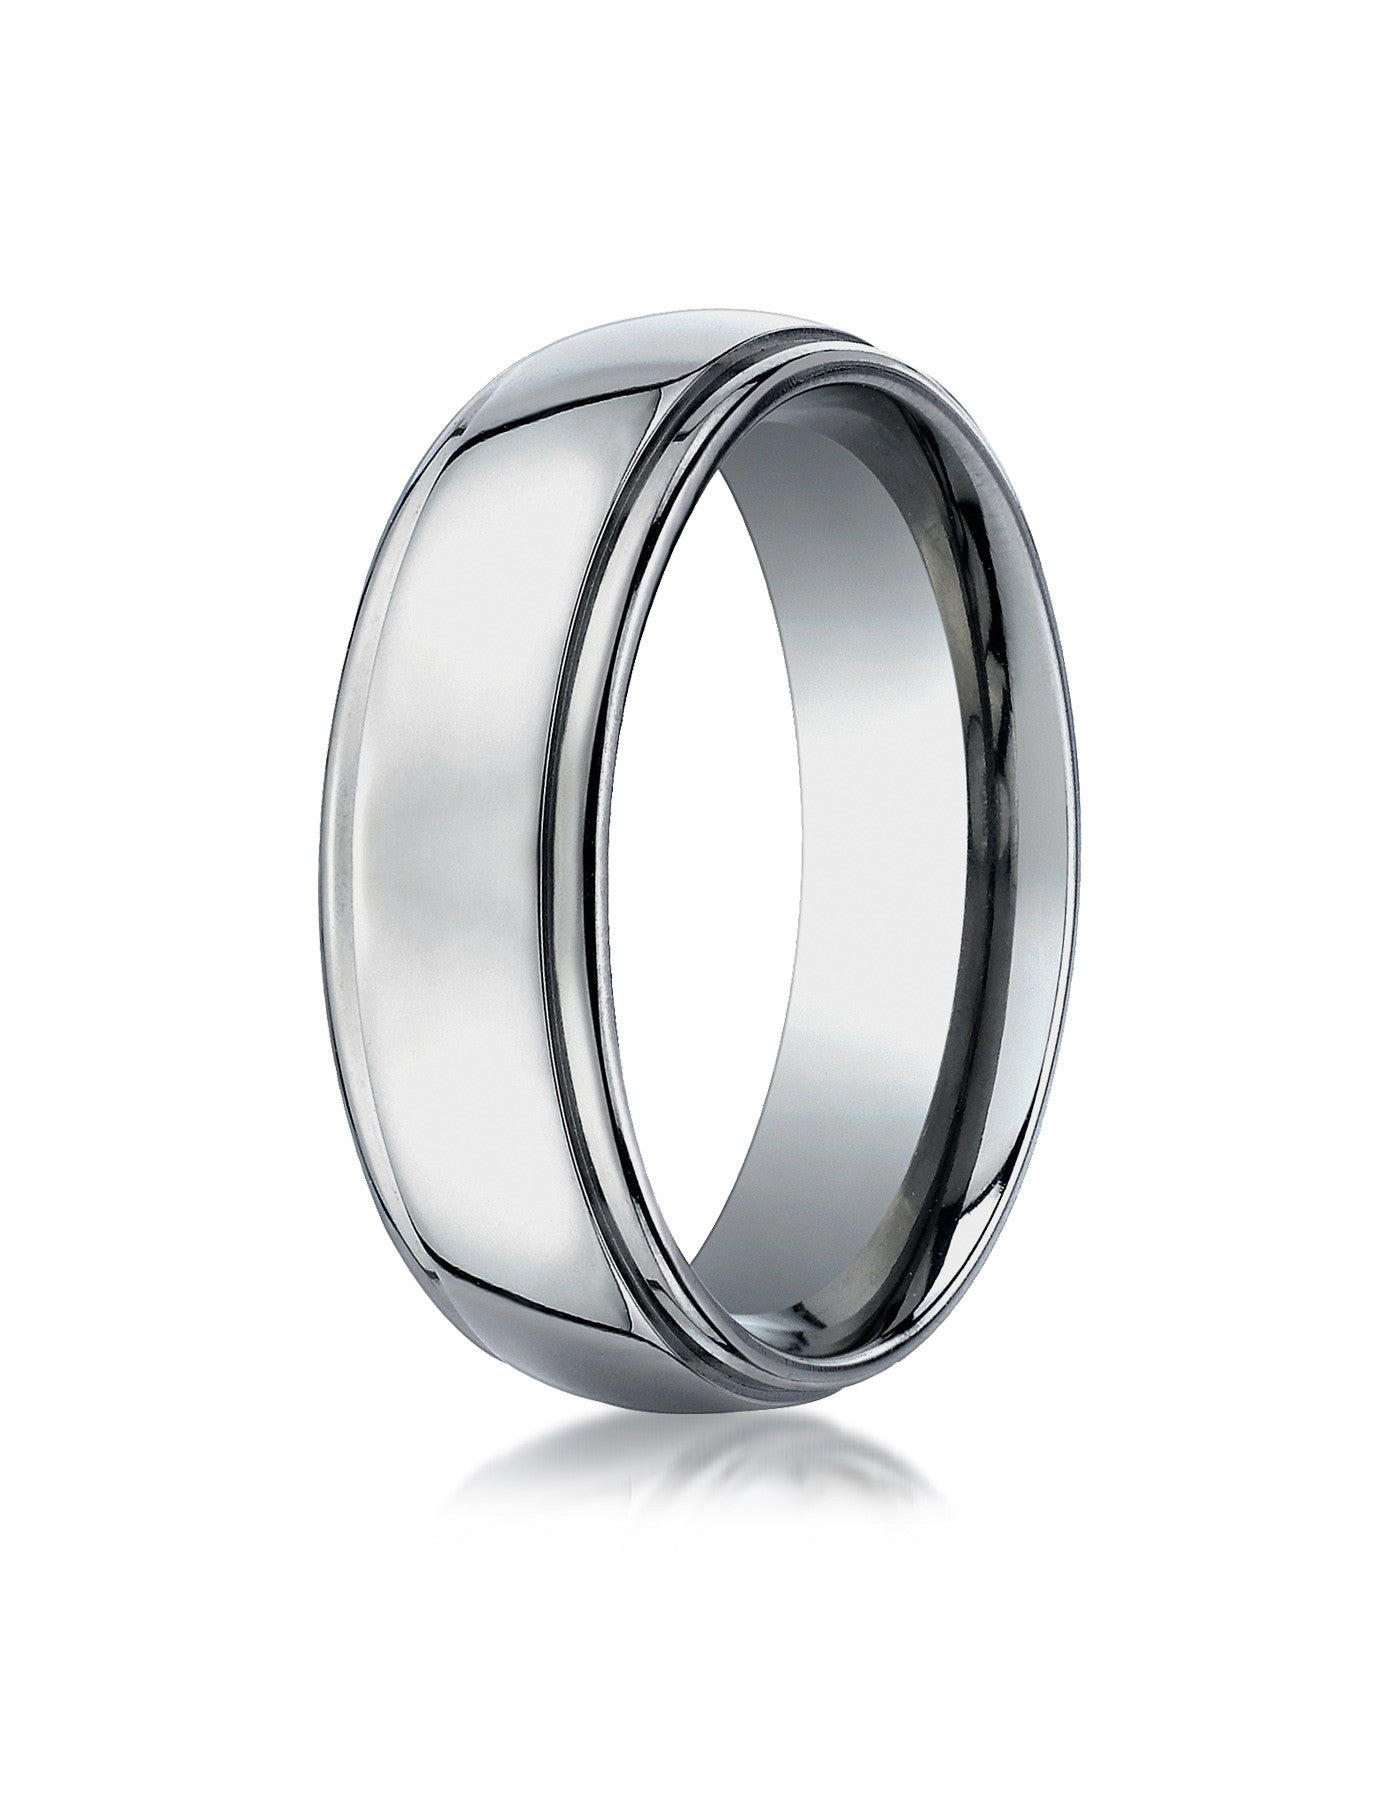 titanium with flower design s rings men edges wedding engagement bands ring pattern band mens floral